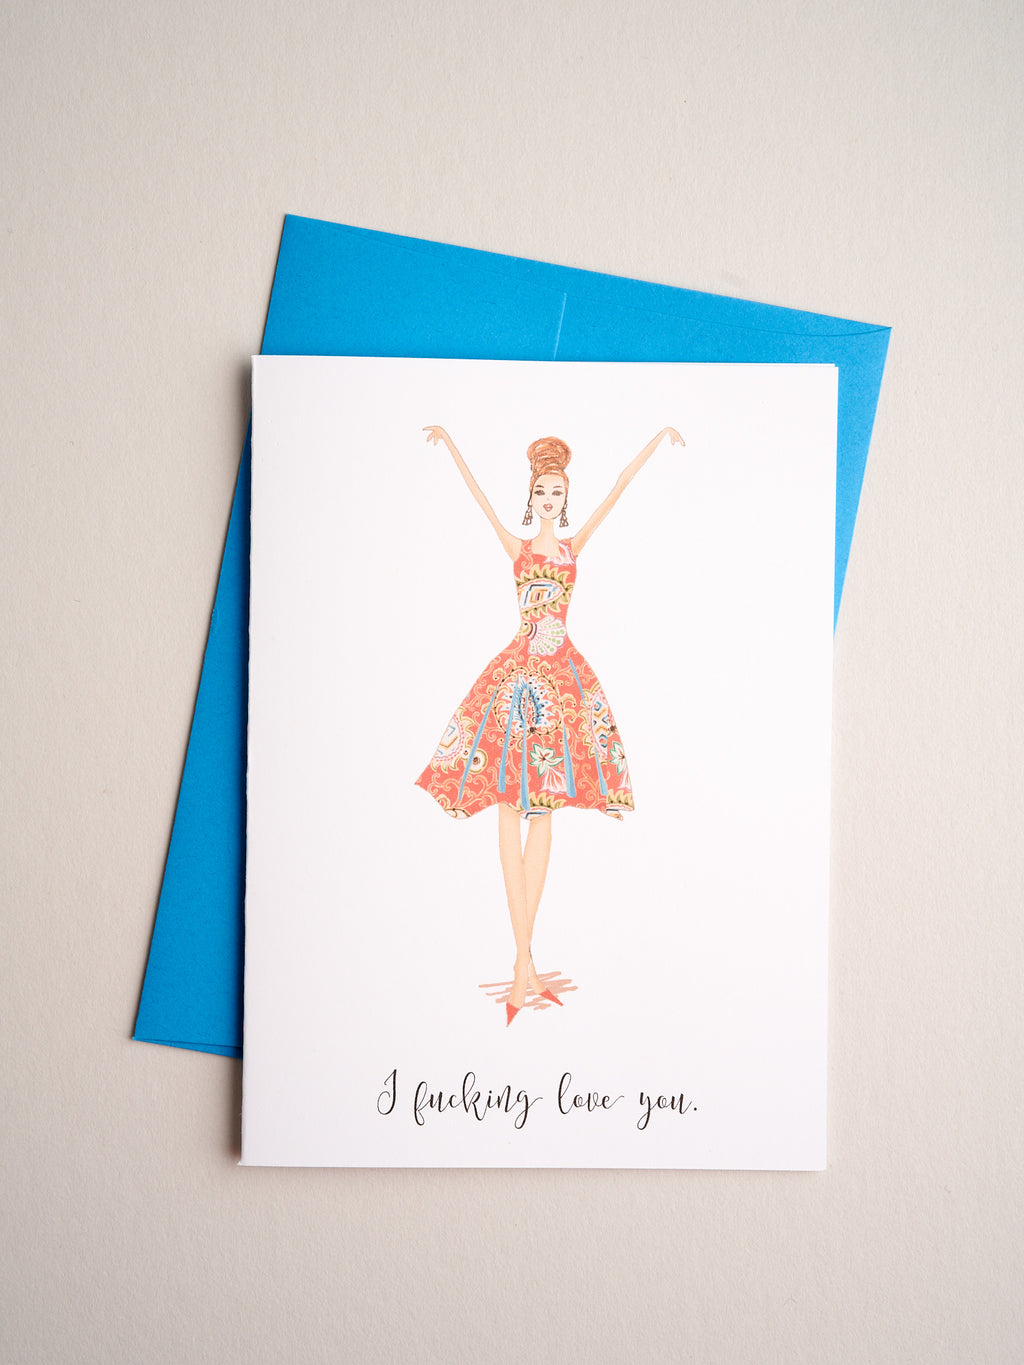 FR-R-08-16-B | F-ing Love you - Greeting Cards - Queen & Grace